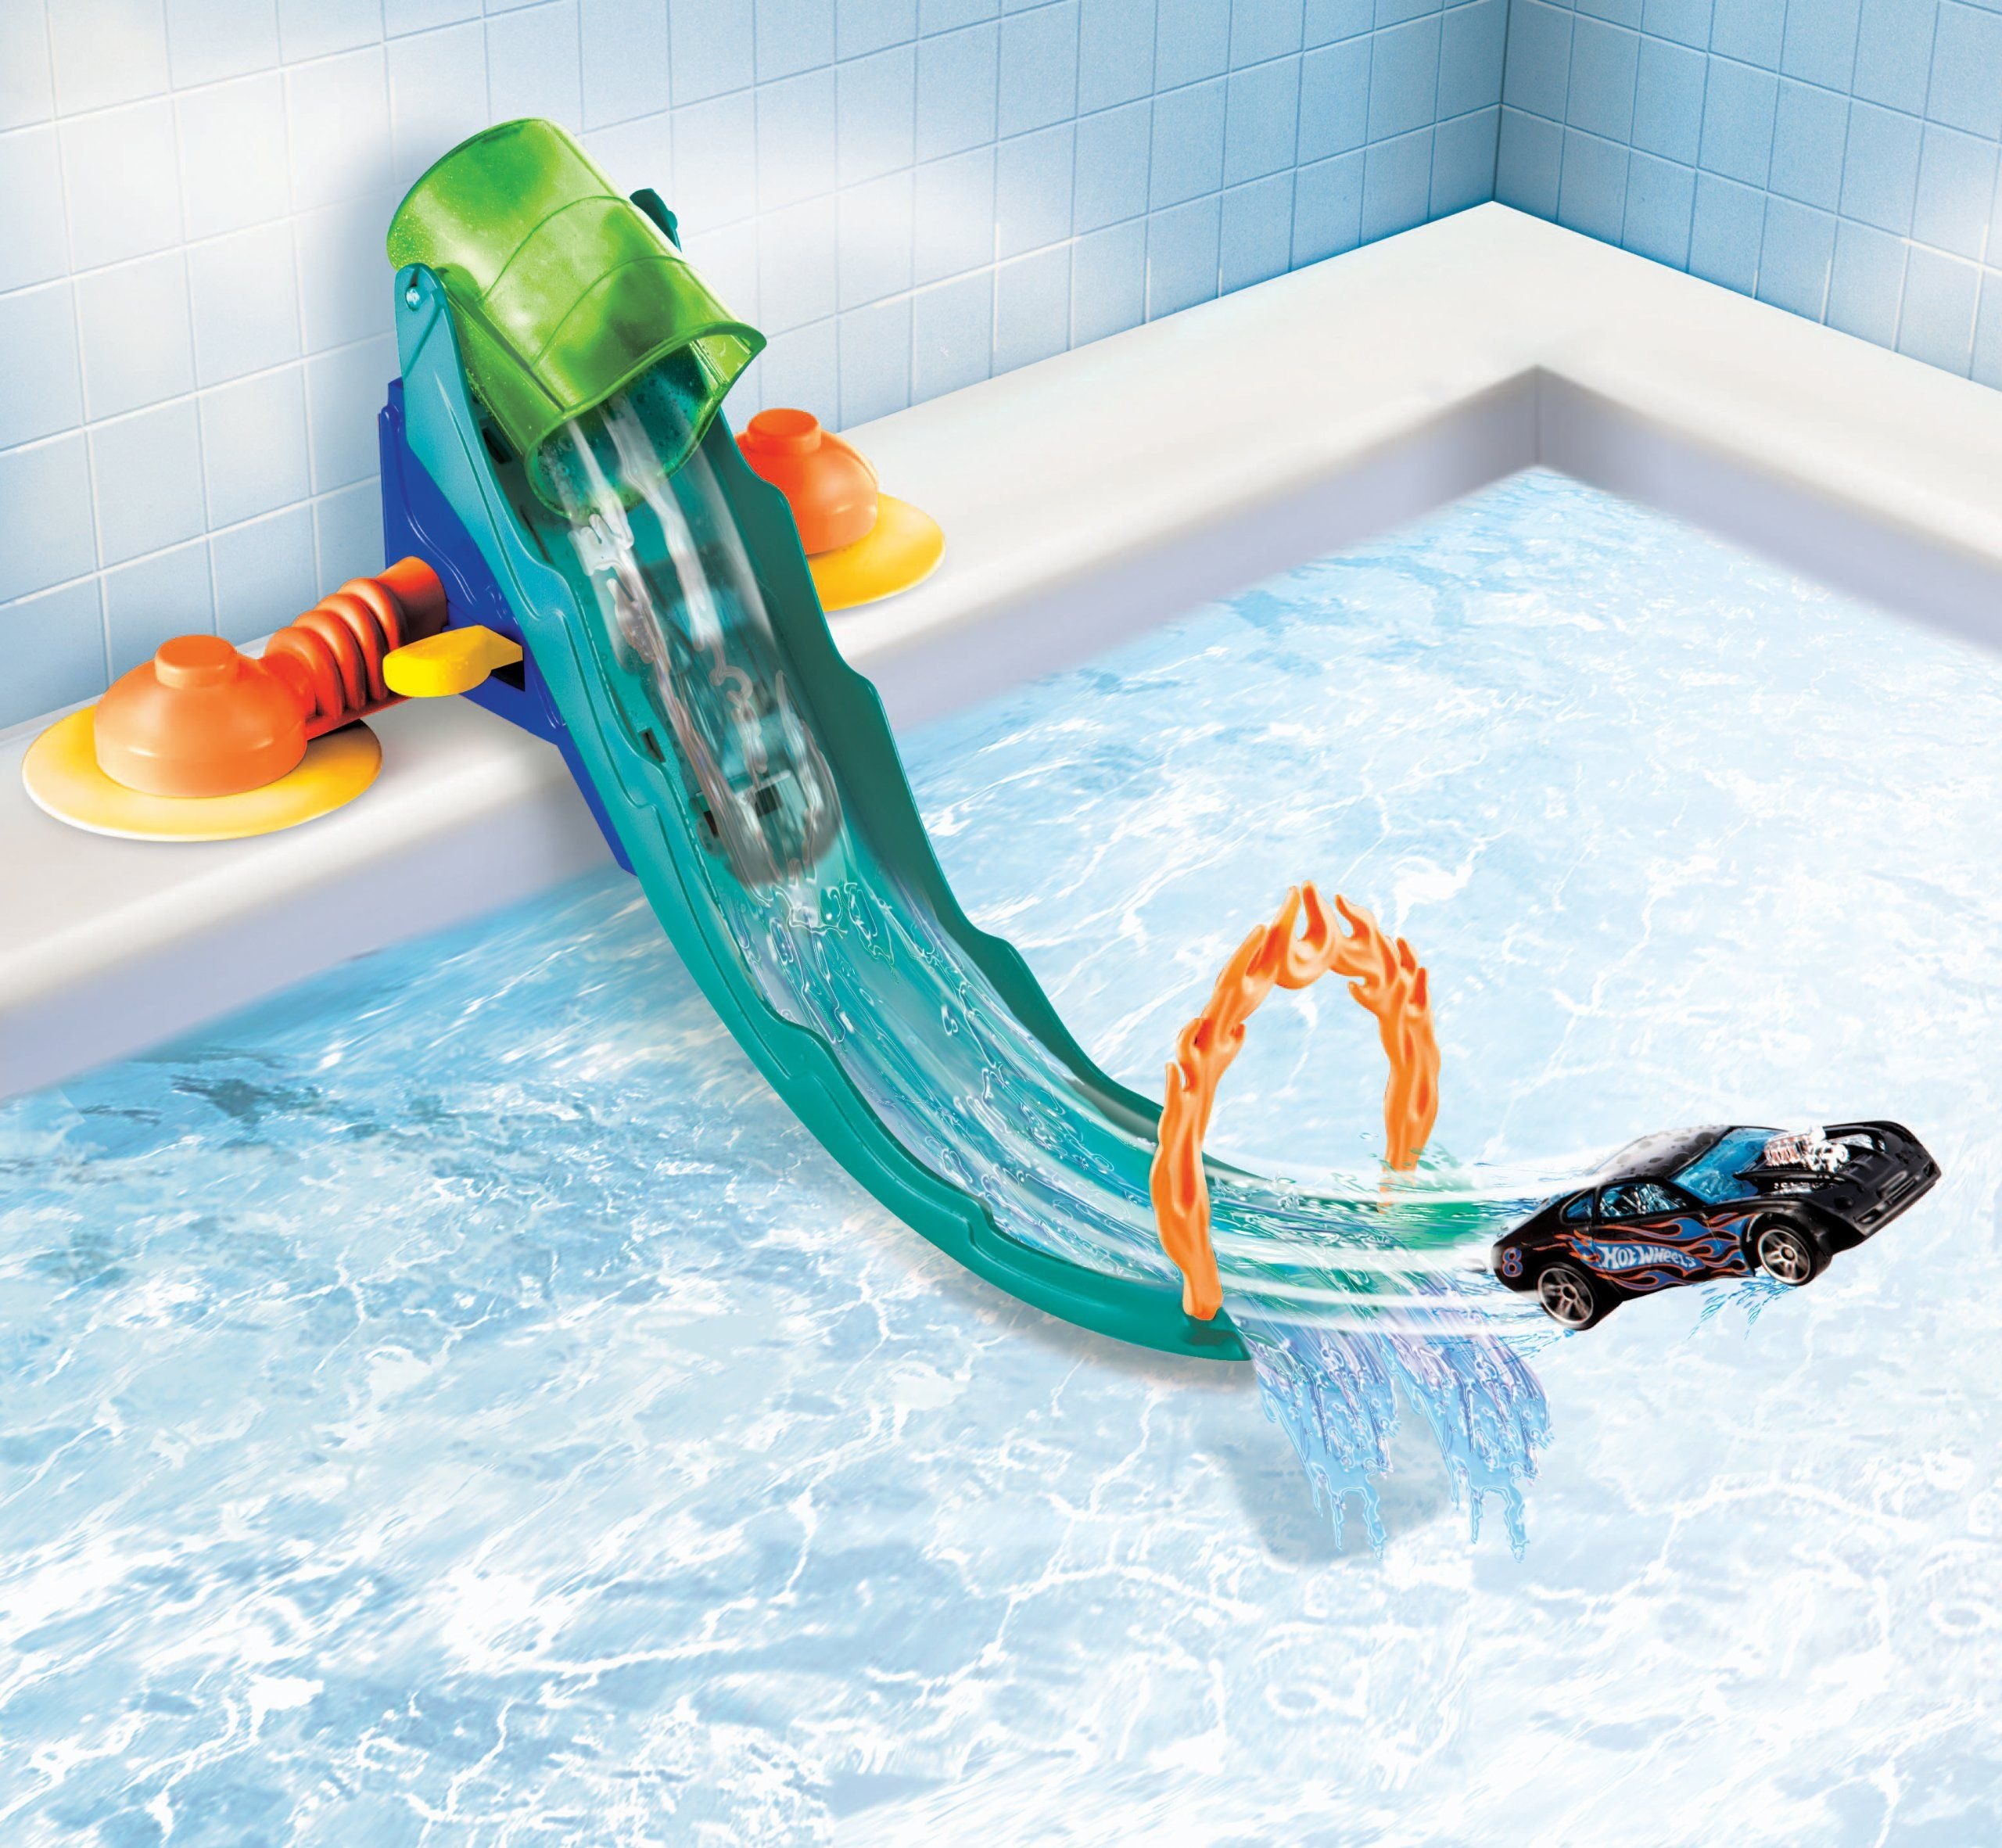 Amazon.com: Hot Wheels Fun In The Tub Playset: Toys & Games | Gift ...